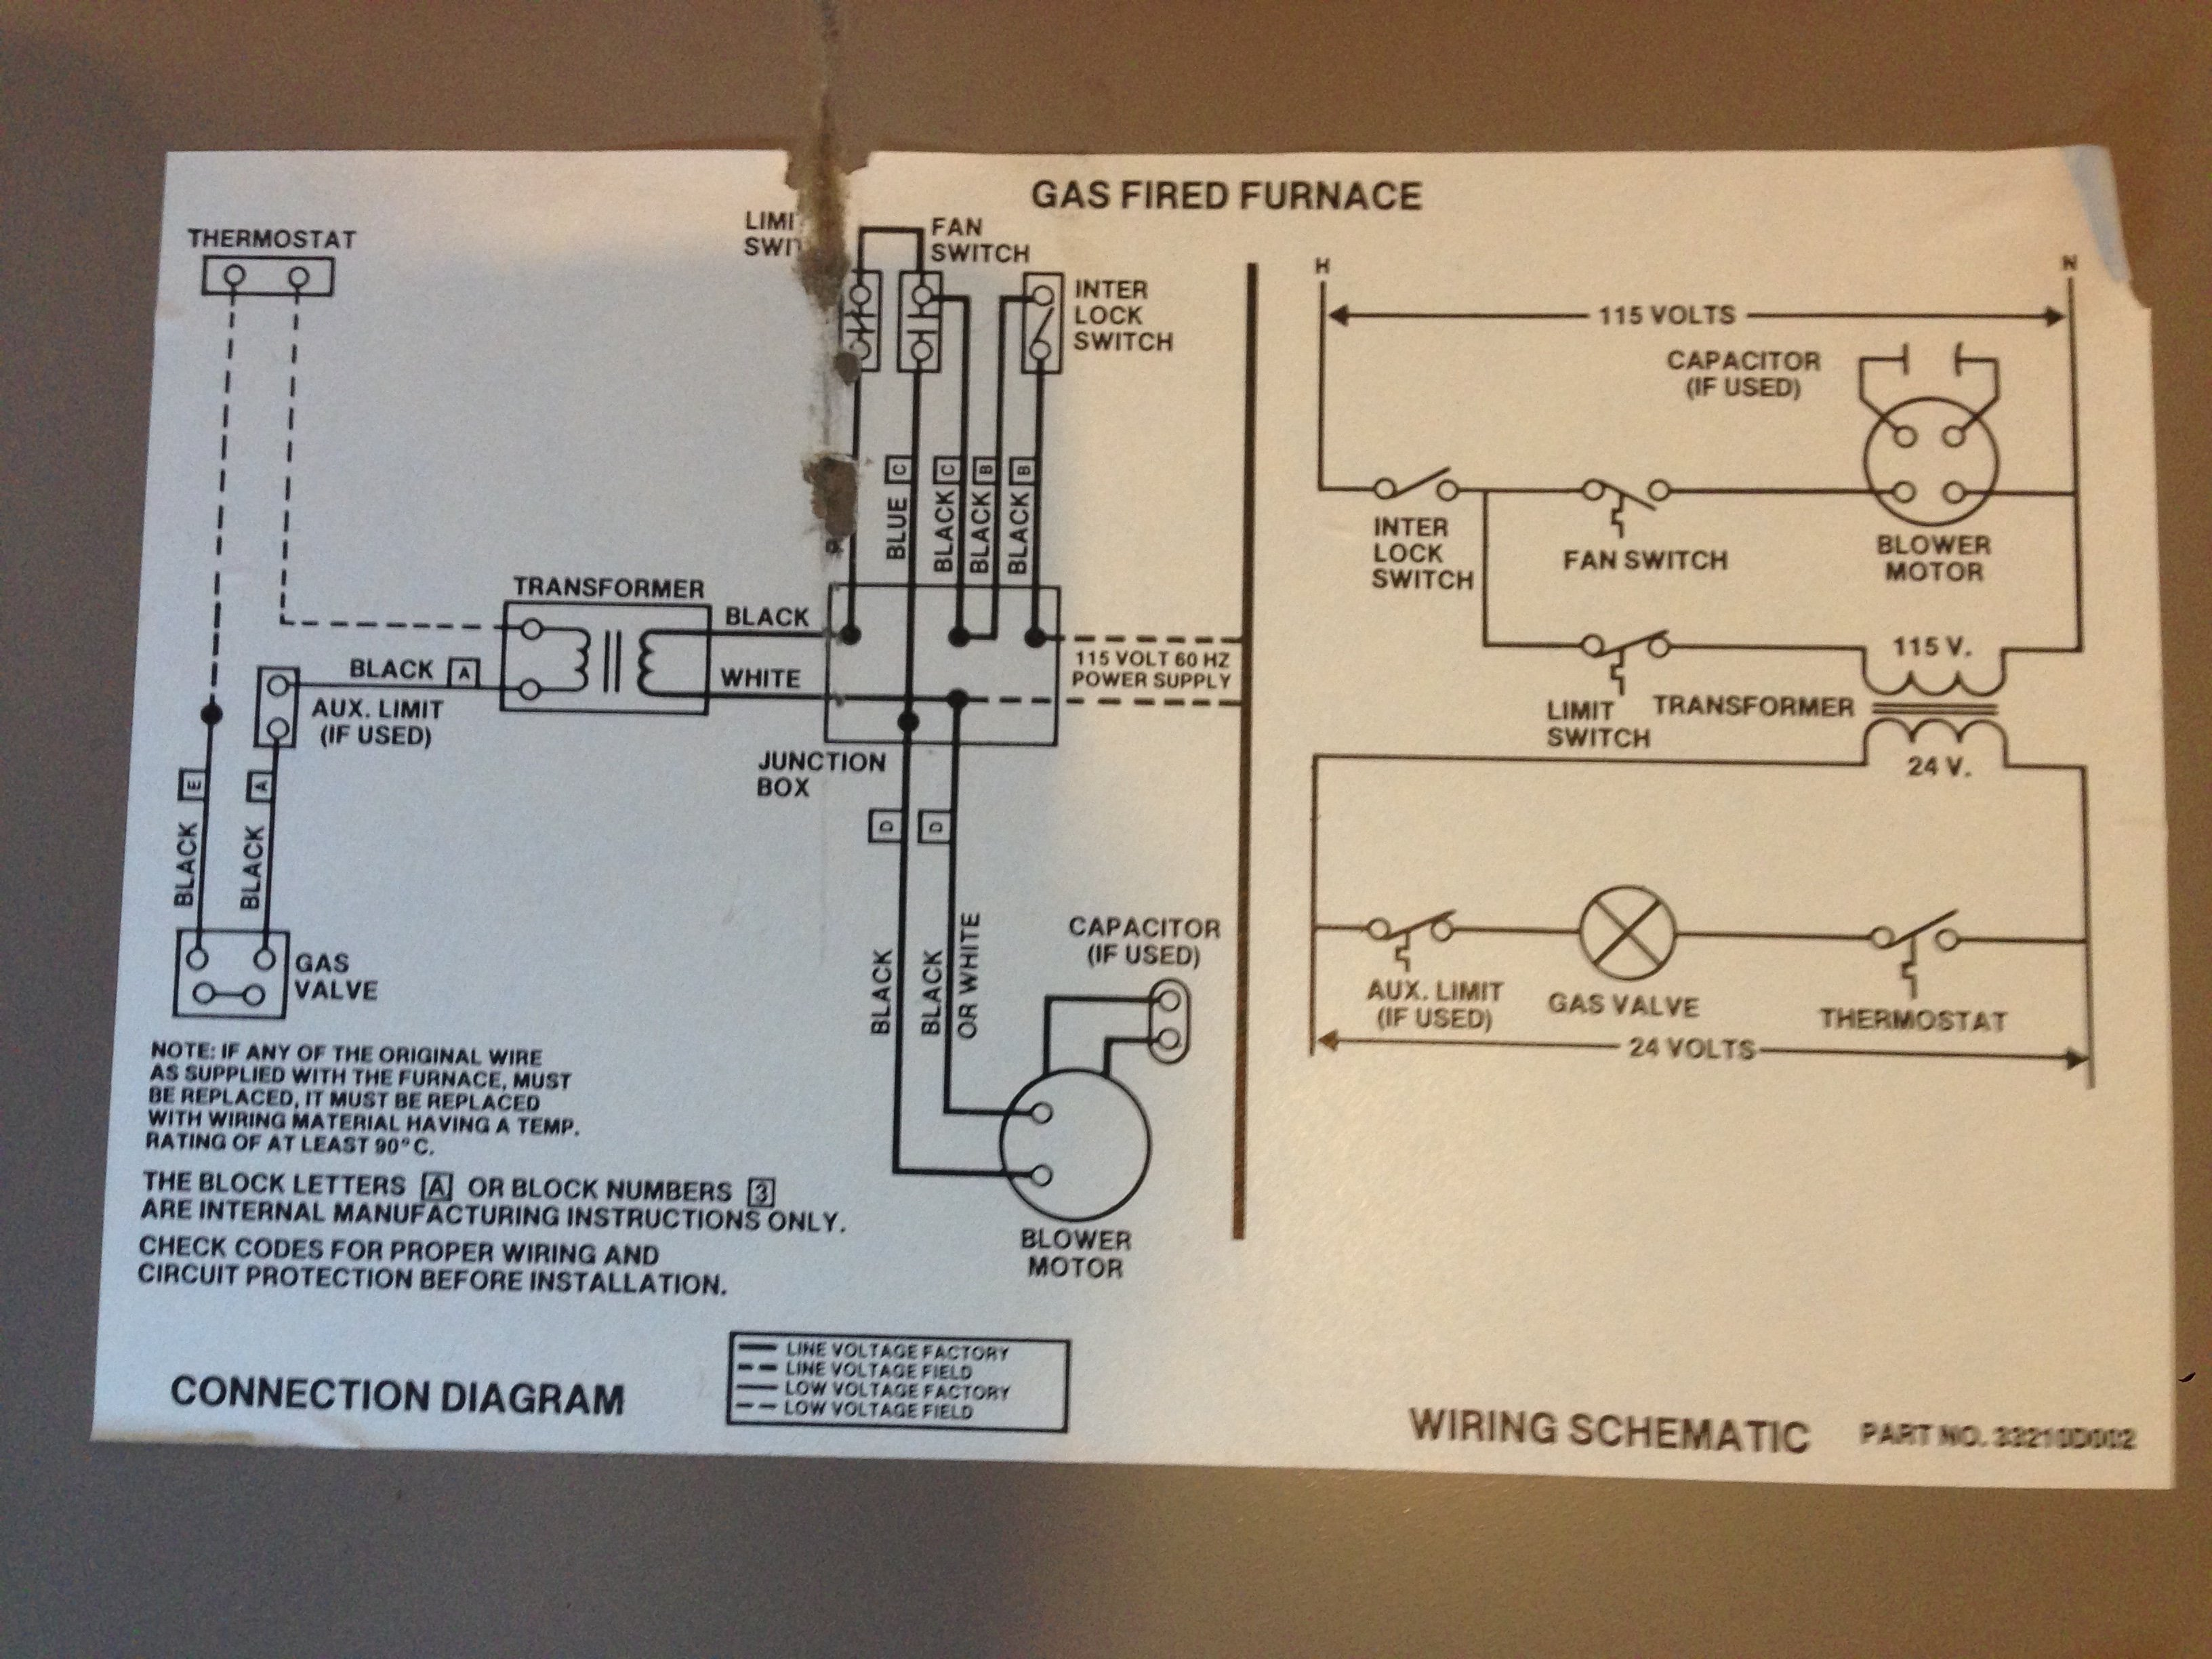 I m looking for the    wiring    instructions for a Honeywell VR800A 1012 Wires on my furnace need to